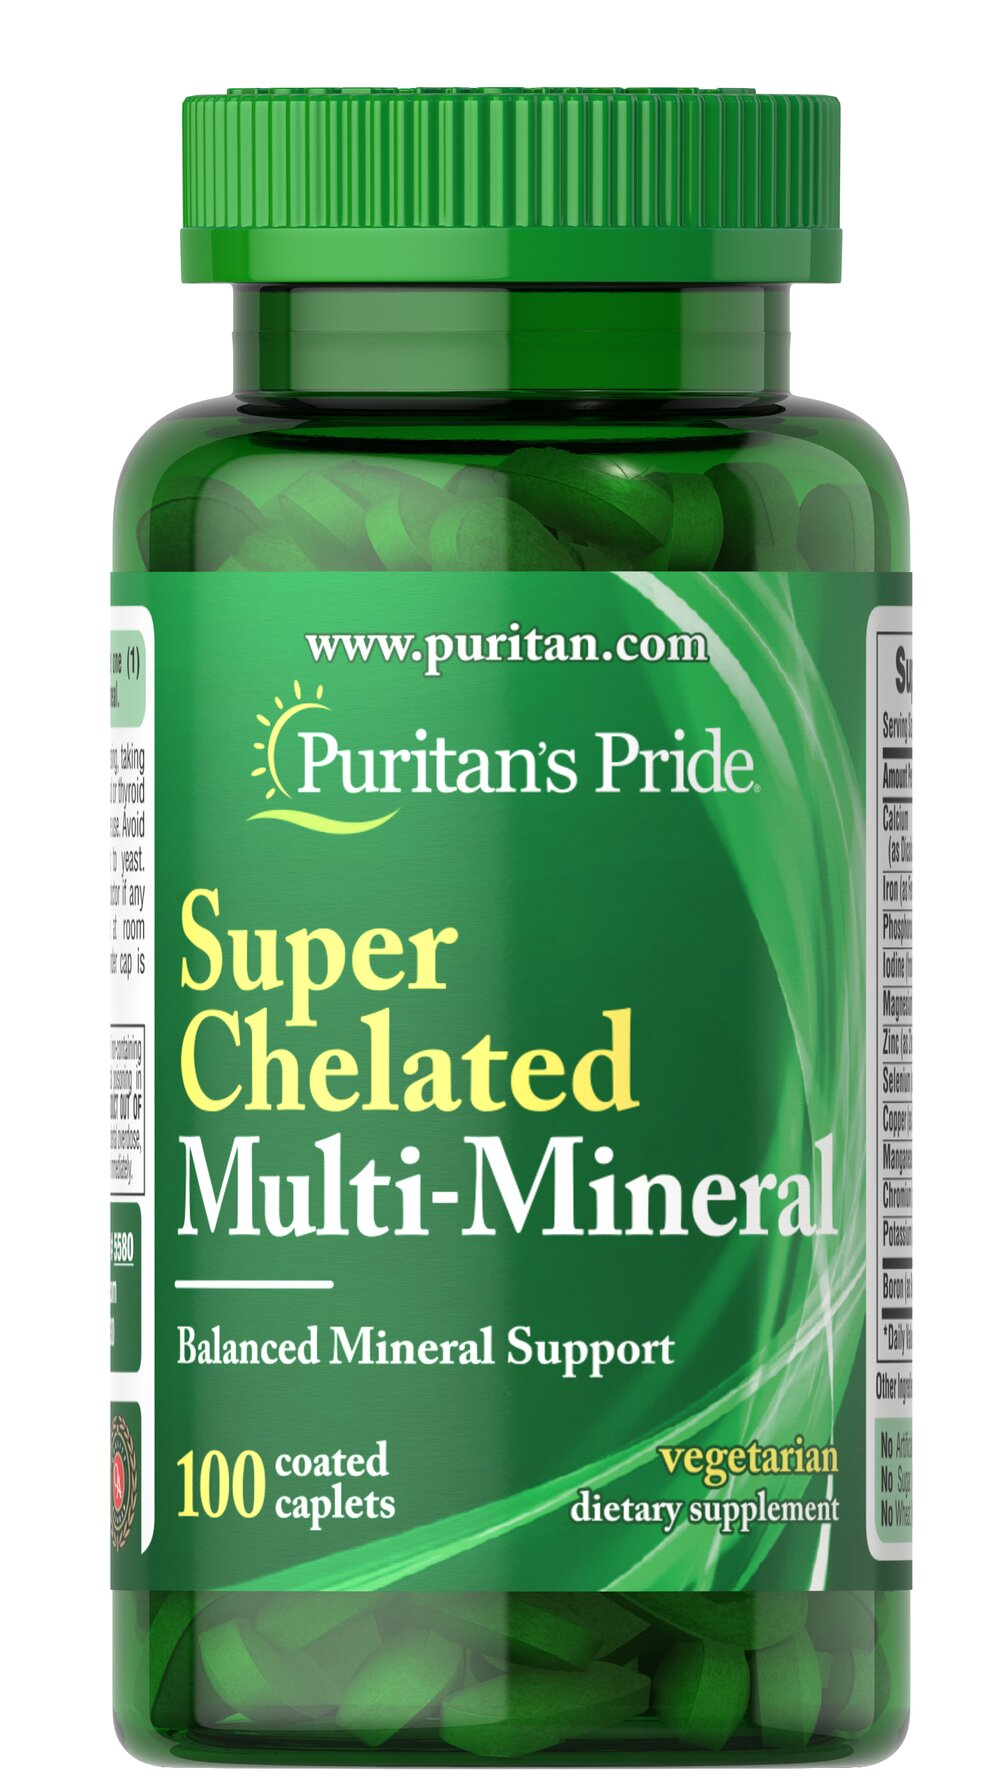 Super Chelated Multi Mineral <p>In Super Chelated Multi-Mineral, we combine over 10 major and trace minerals into a comprehensive mineral blend. Super Chelated Multi-Mineral contains a nutritional treasure chest including Calcium and Magnesium, which play essential roles in maintaining proper bone mineralization, Zinc, which helps support immune function and Boron, which plays a role in bone metabolism.**</p> 100 Coated Caplets  $6.99